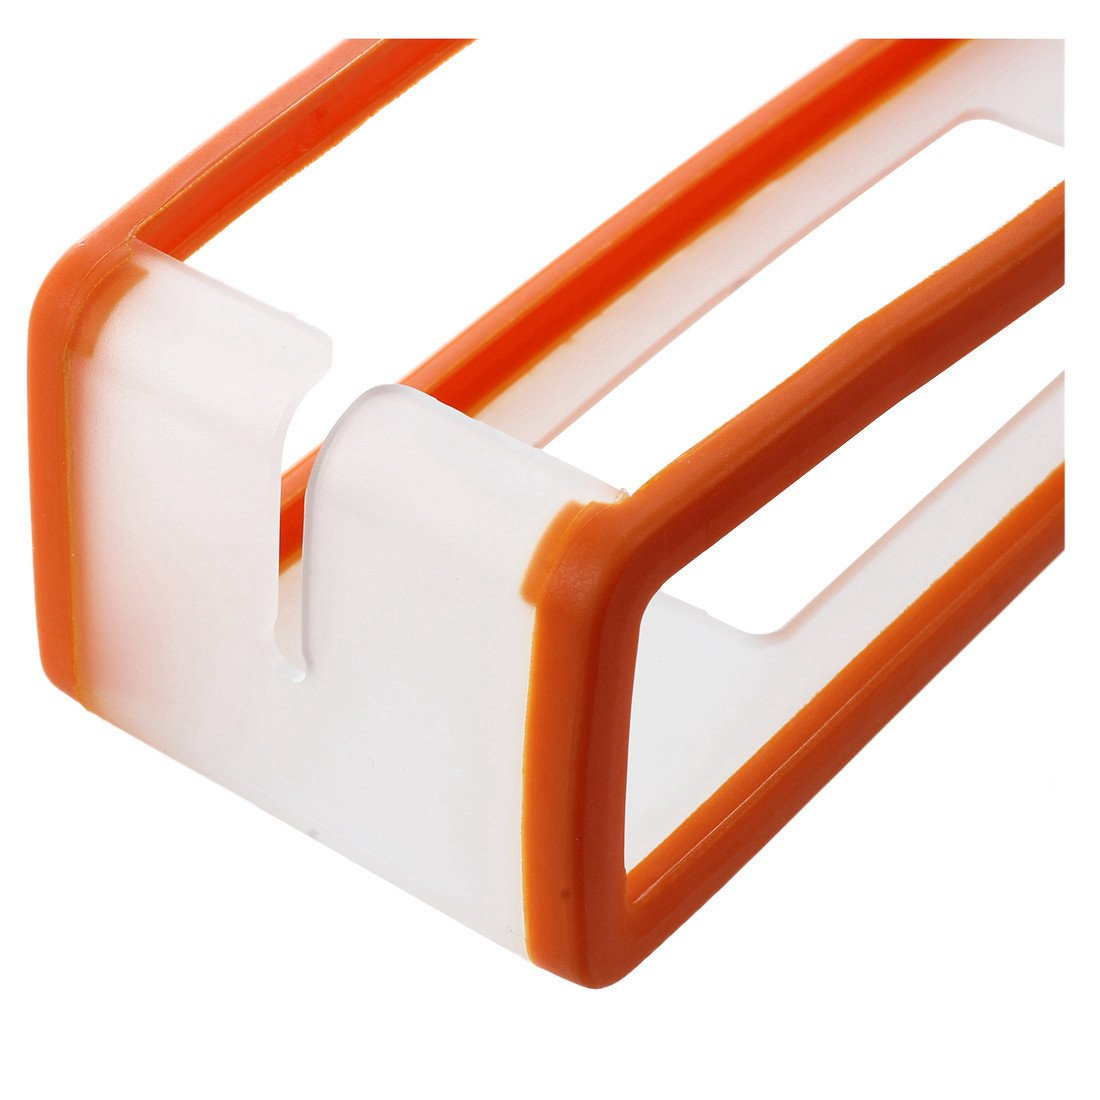 Soft Cover Case Protector for BOSE SoundLink Mini Bluetooth Speaker Orange+Clear R Soft Cover Case SODIAL